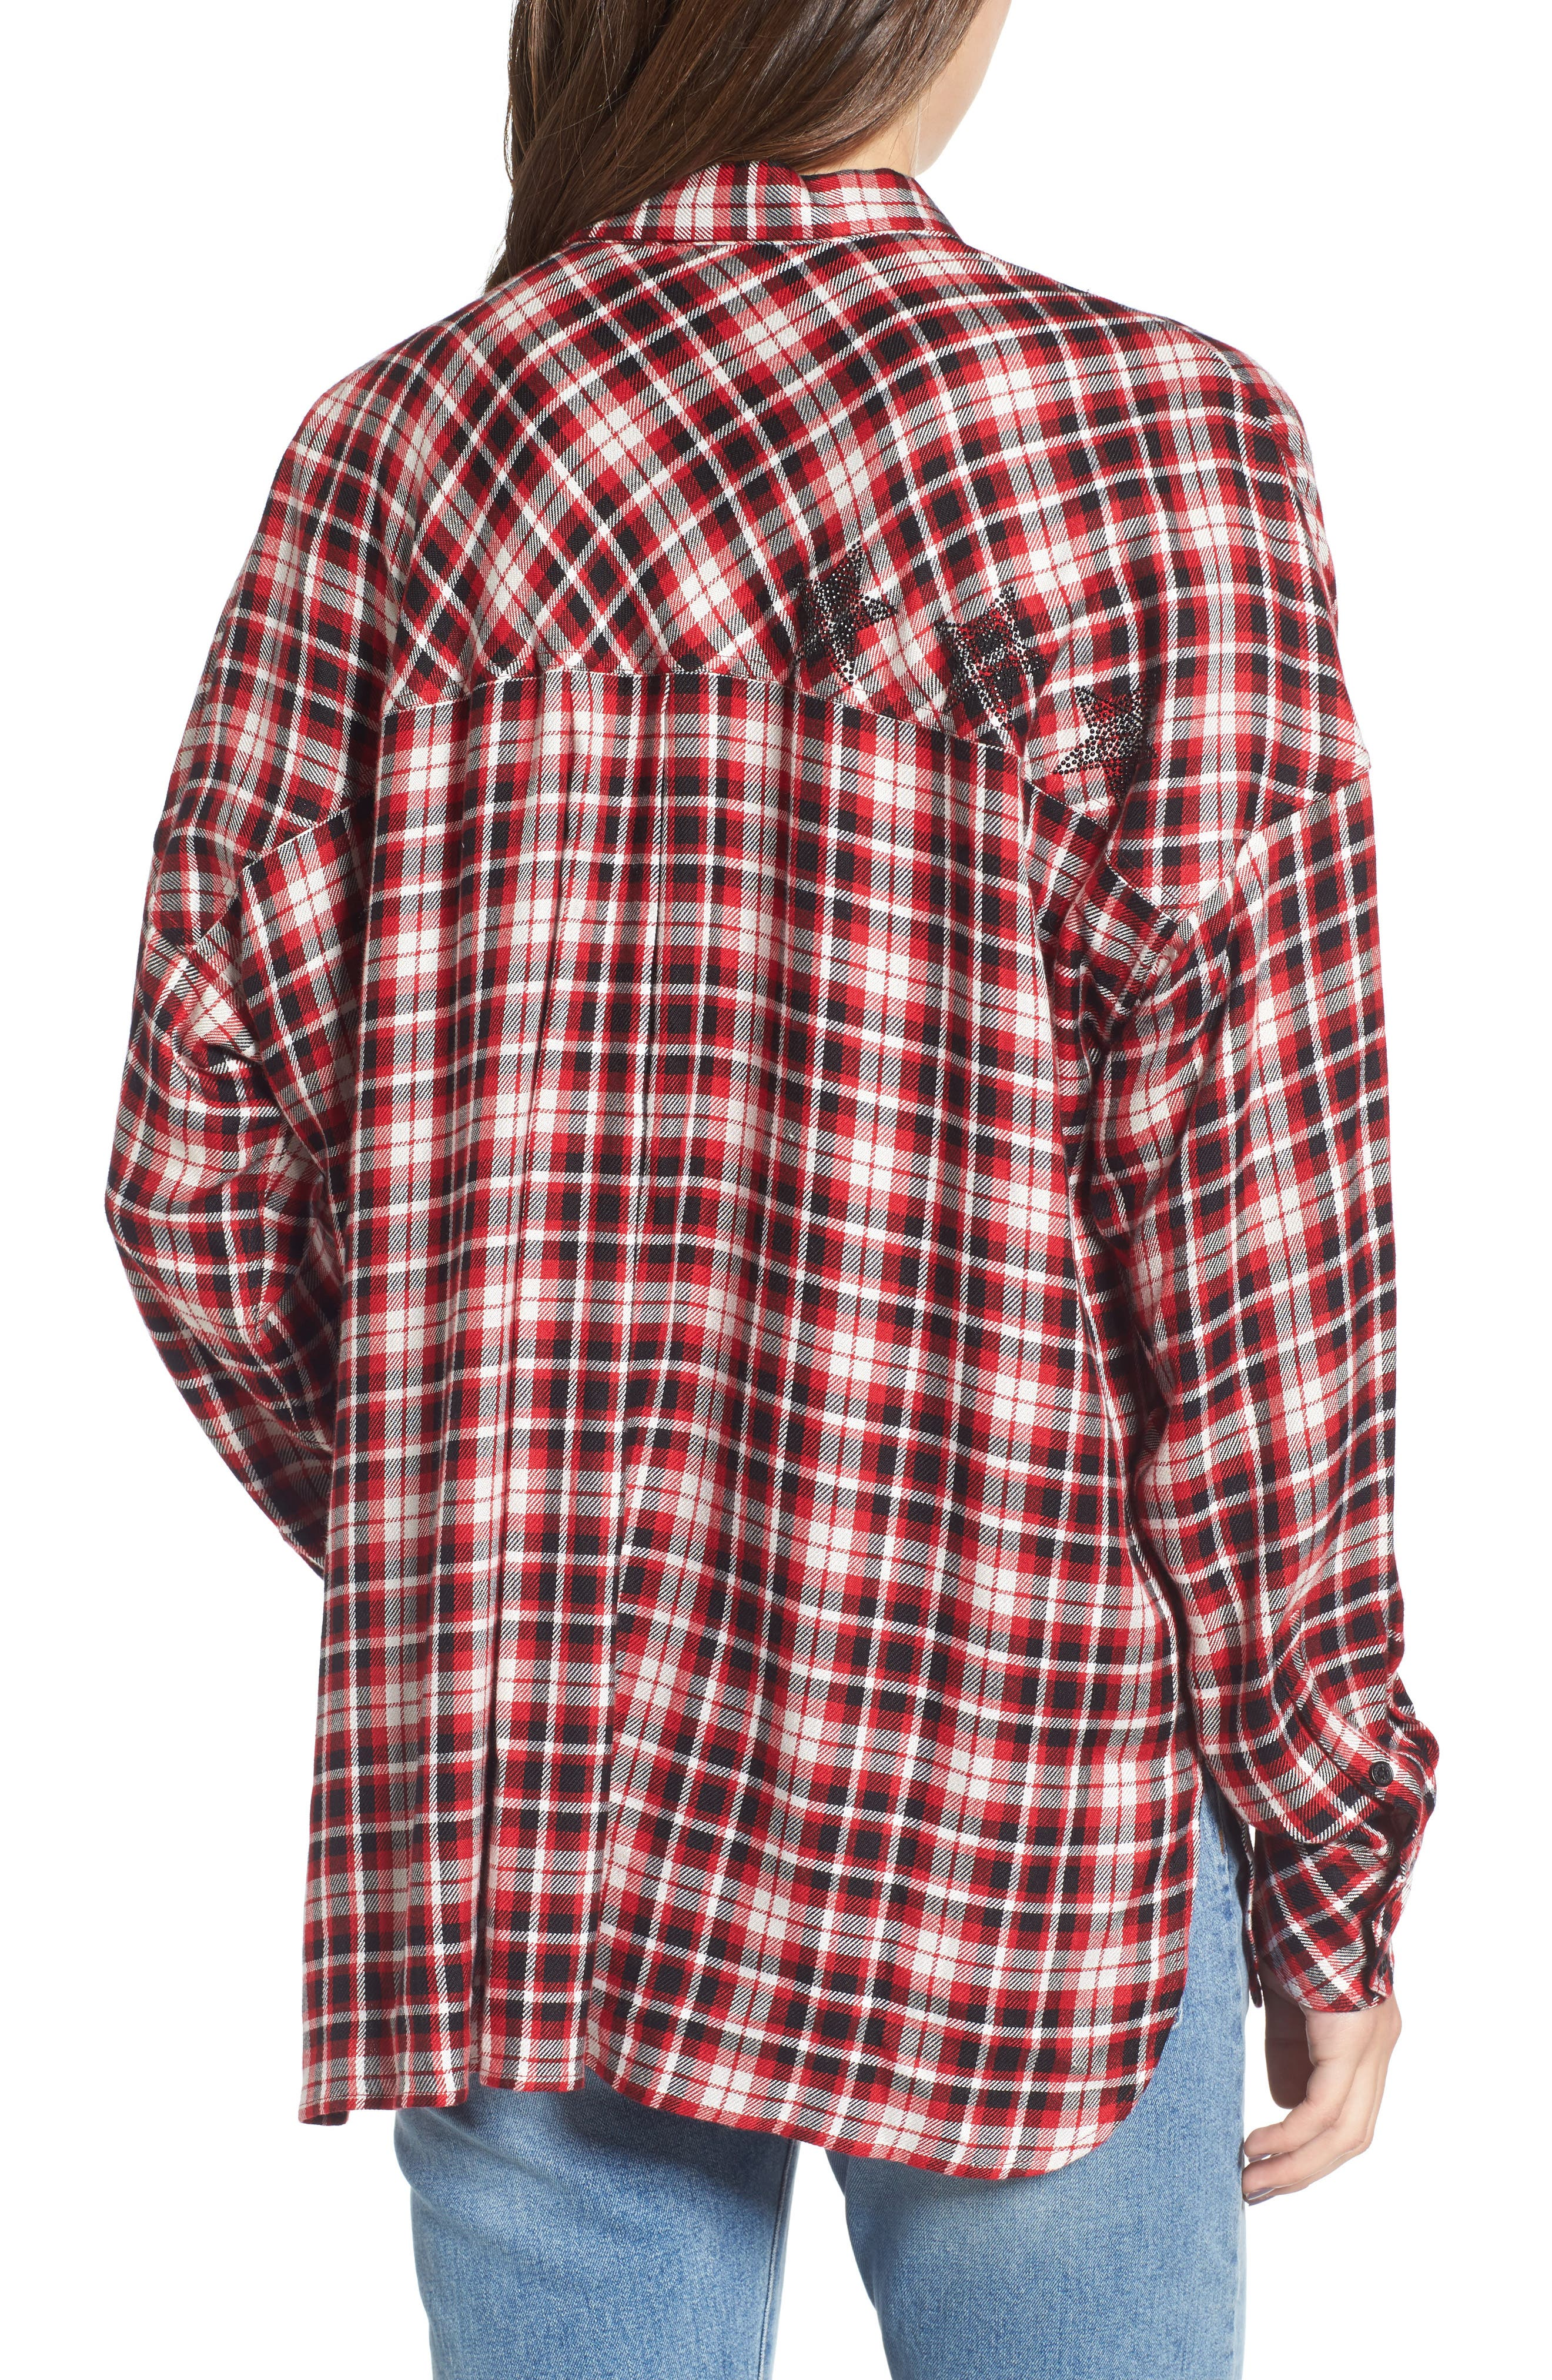 Tamara Car Plaid Shirt,                             Alternate thumbnail 2, color,